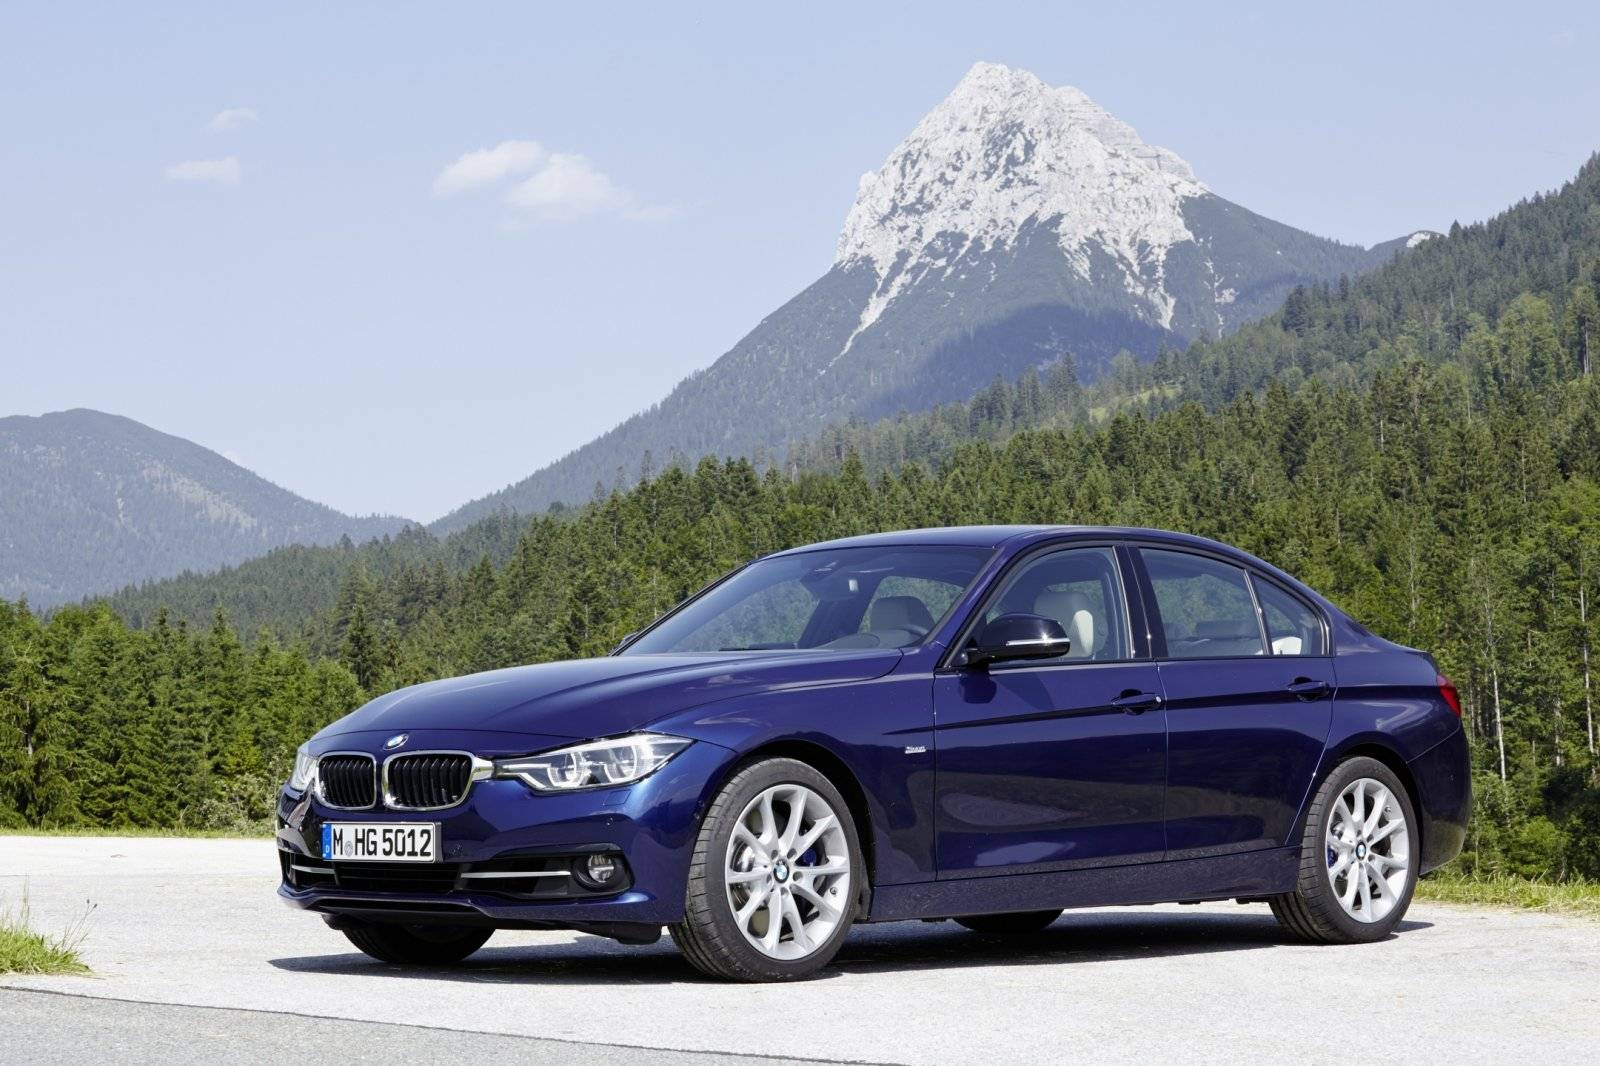 test autotest bmw 3 serie autotests. Black Bedroom Furniture Sets. Home Design Ideas